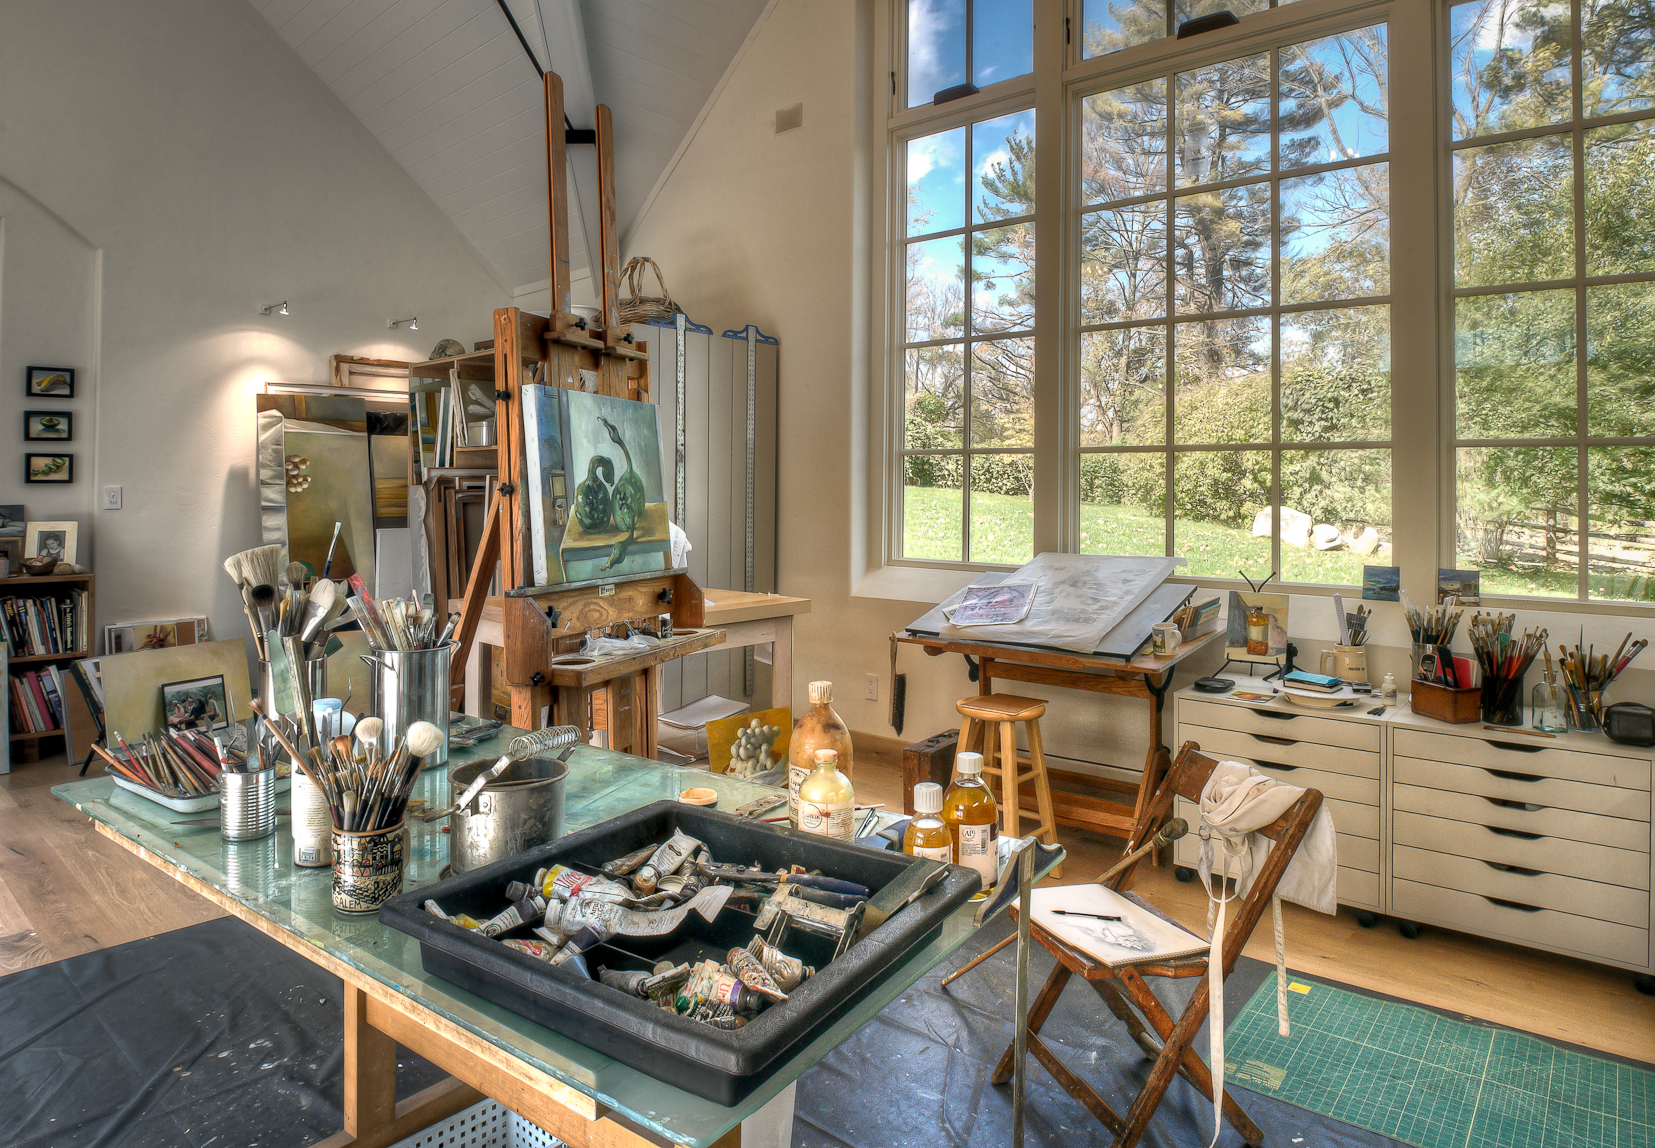 Attirant Creative Corners: Incredible And Inspiring Home Art Studios